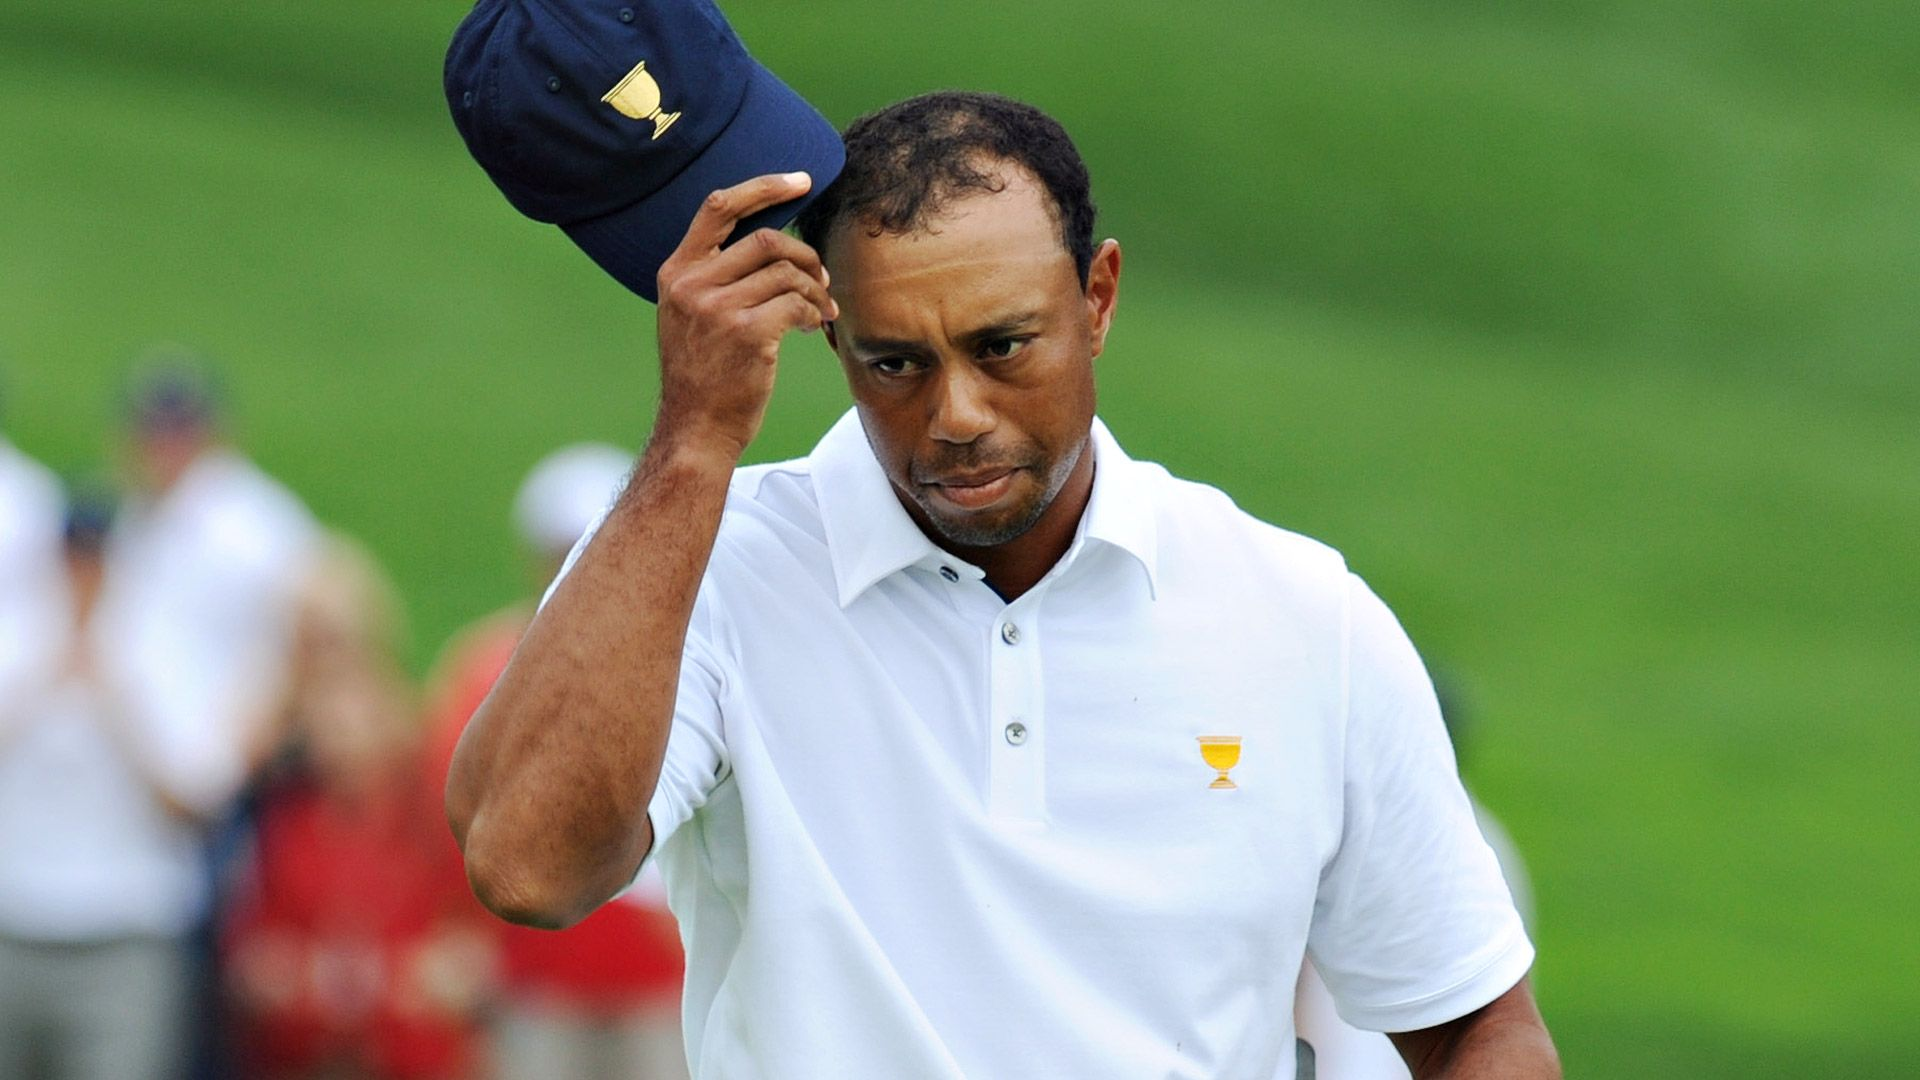 tiger woods opens up on failed marriage  future in golf in